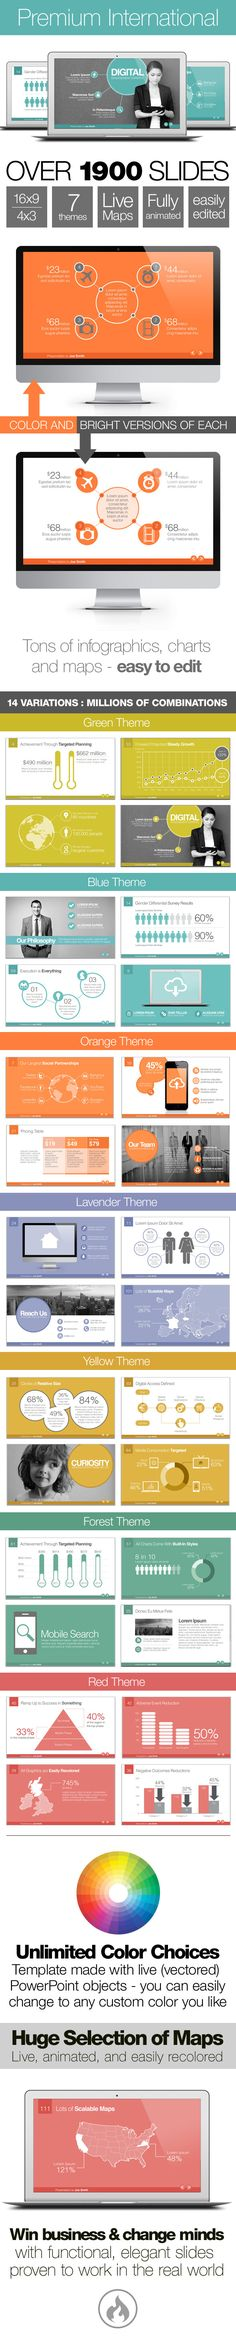 Stampede - Multipurpose Powerpoint Template | Business Powerpoint